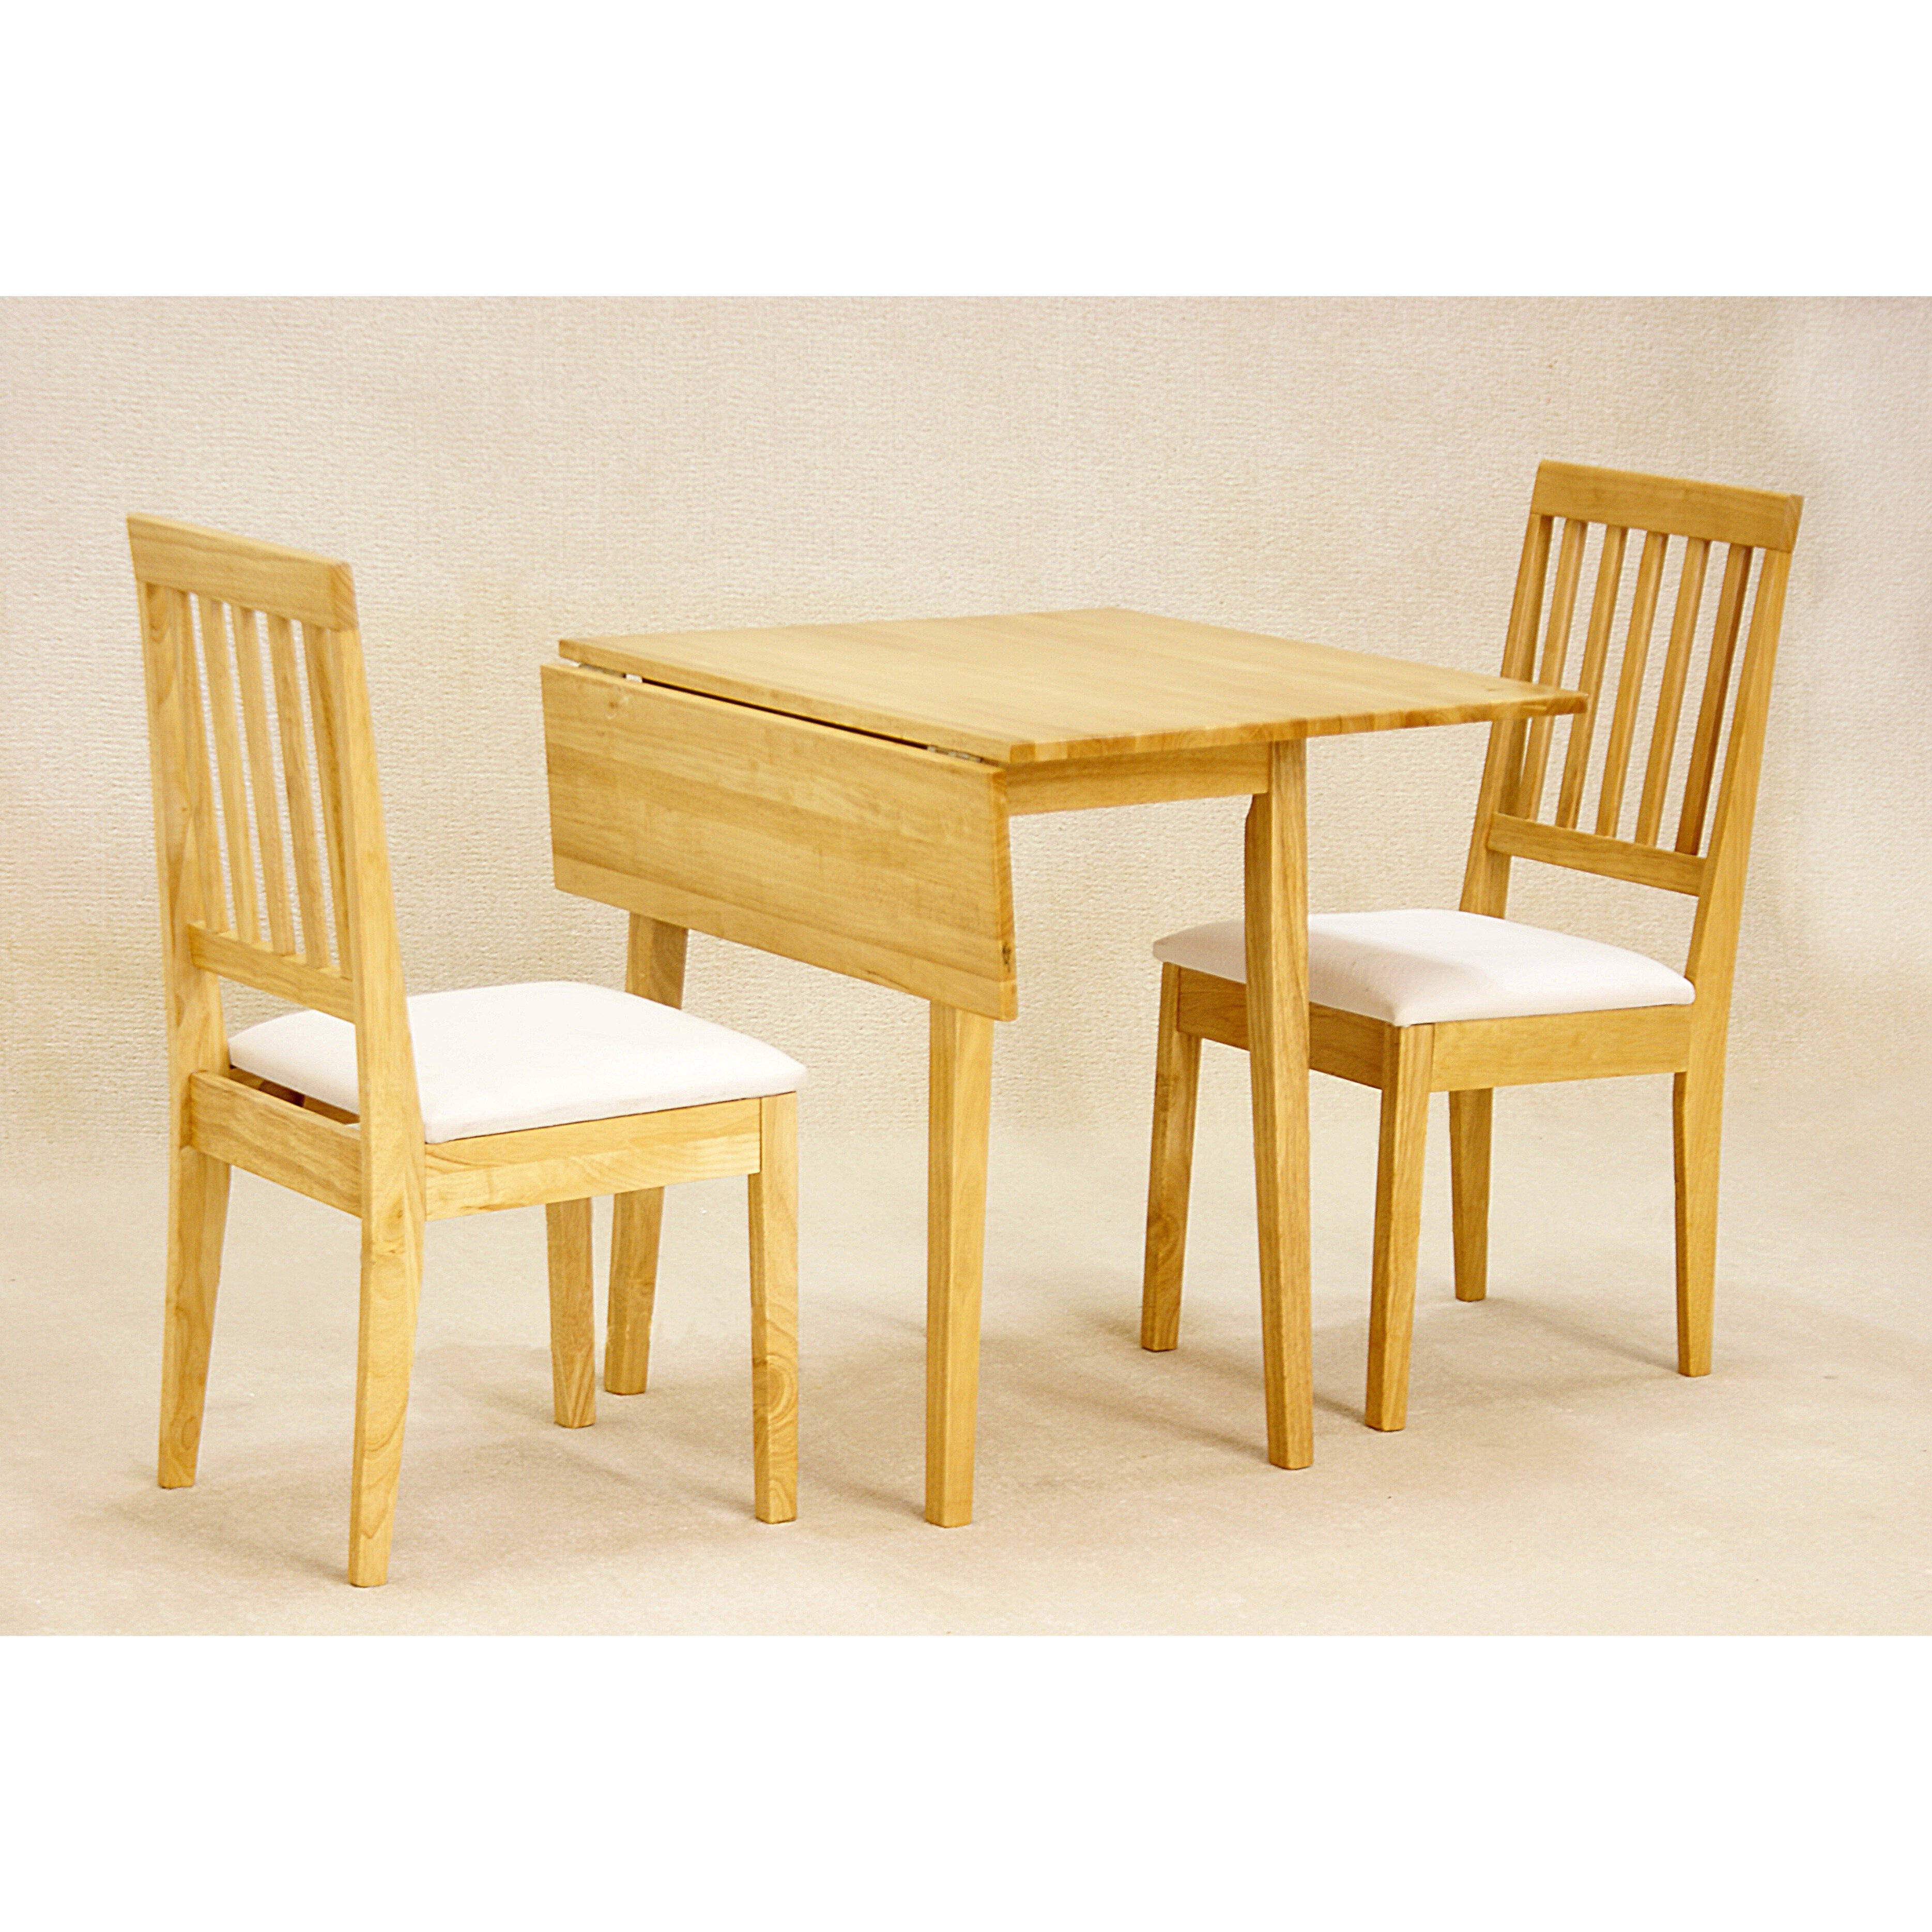 2 Chair Dining Room Set dact